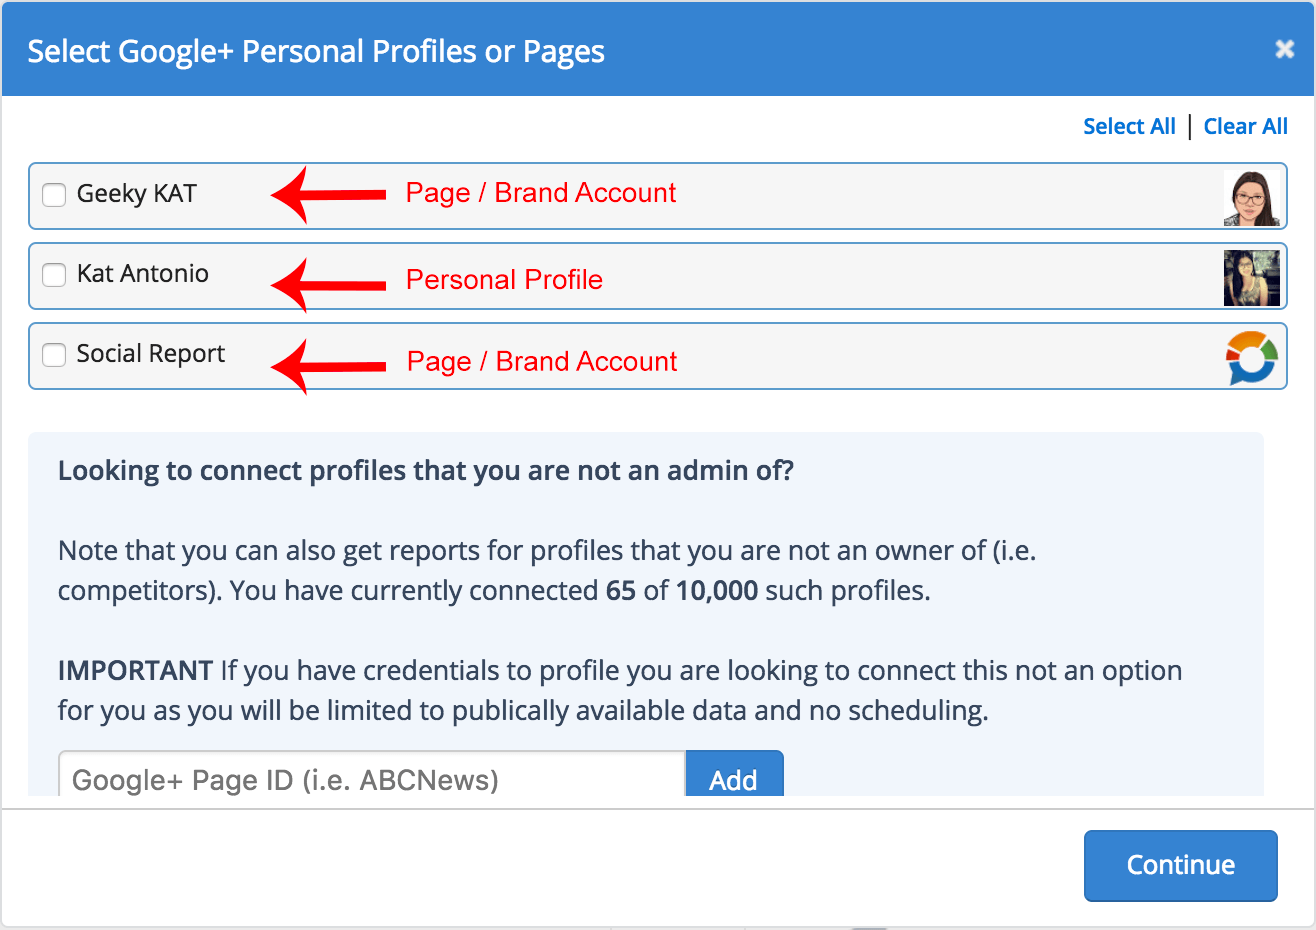 Adding A Google+ Profile/Page